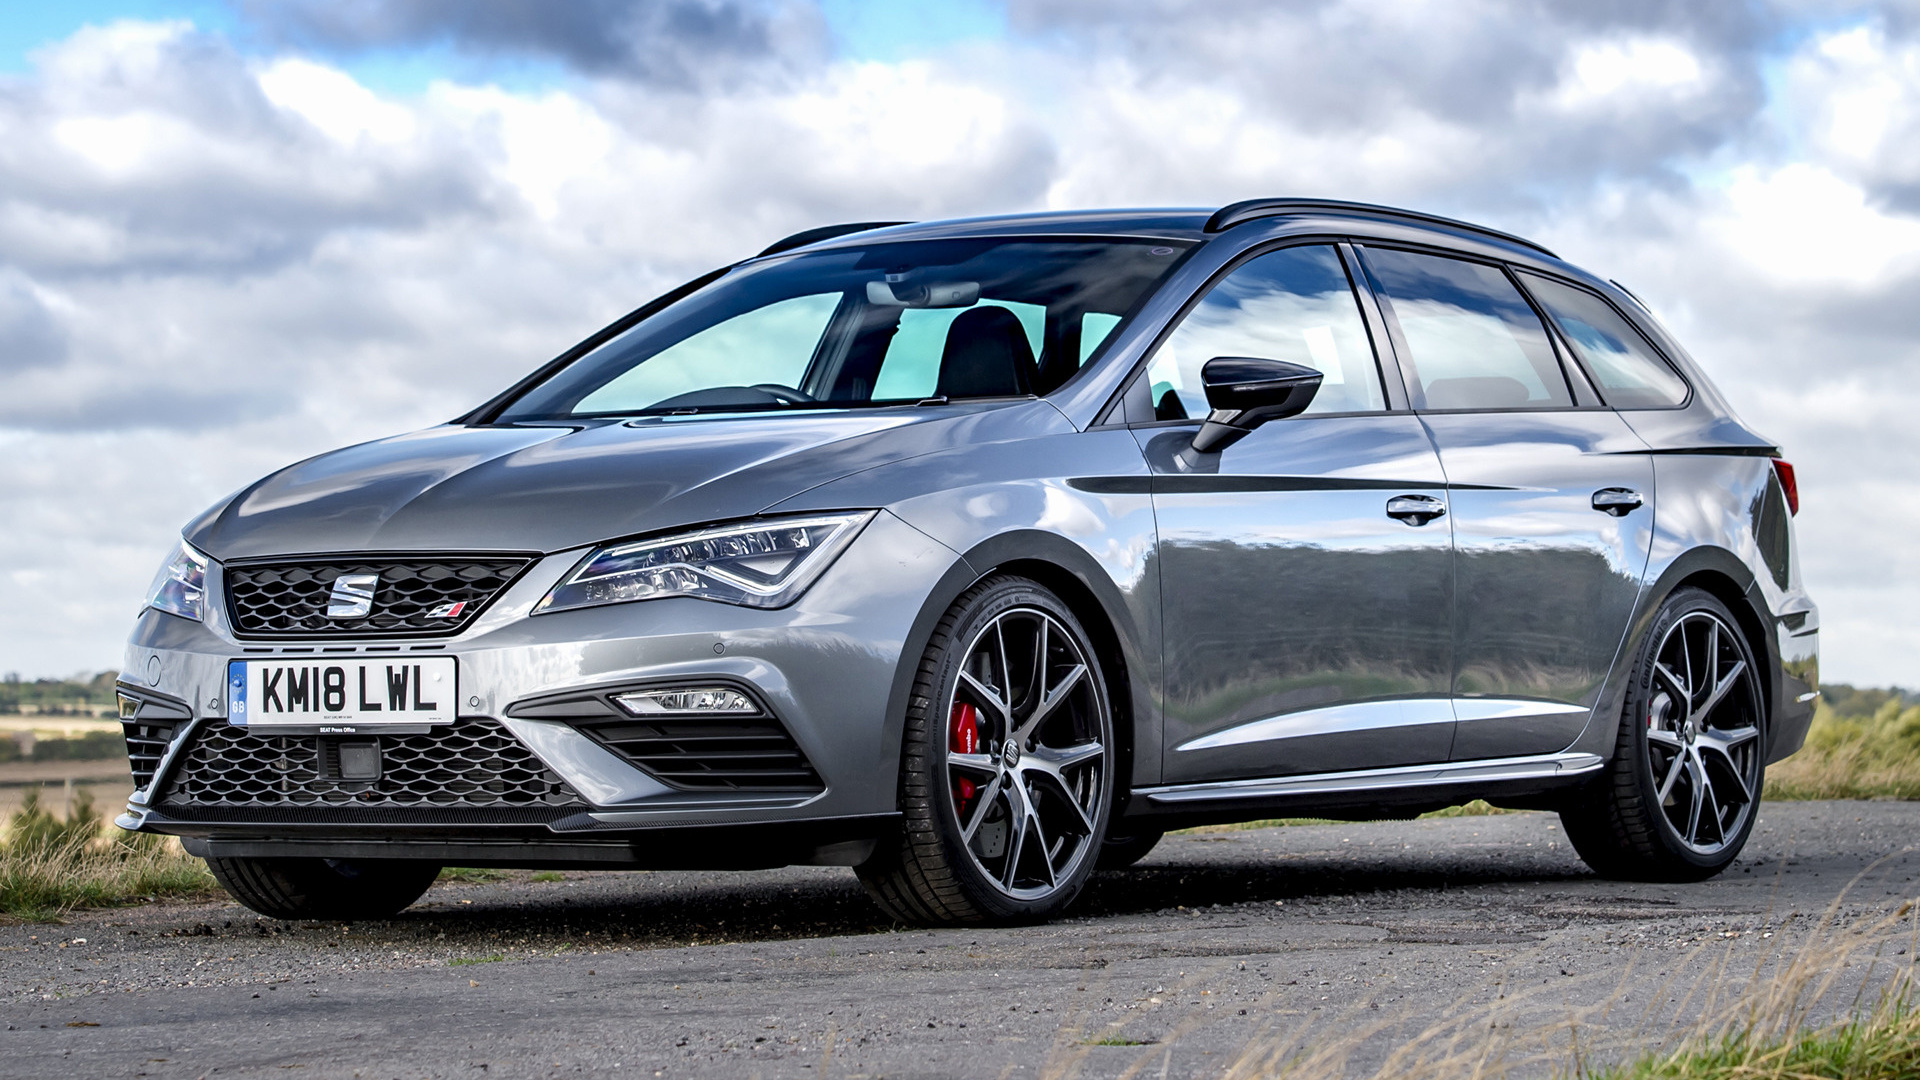 2018 seat leon st cupra 300 carbon edition uk wallpapers and hd images car pixel. Black Bedroom Furniture Sets. Home Design Ideas